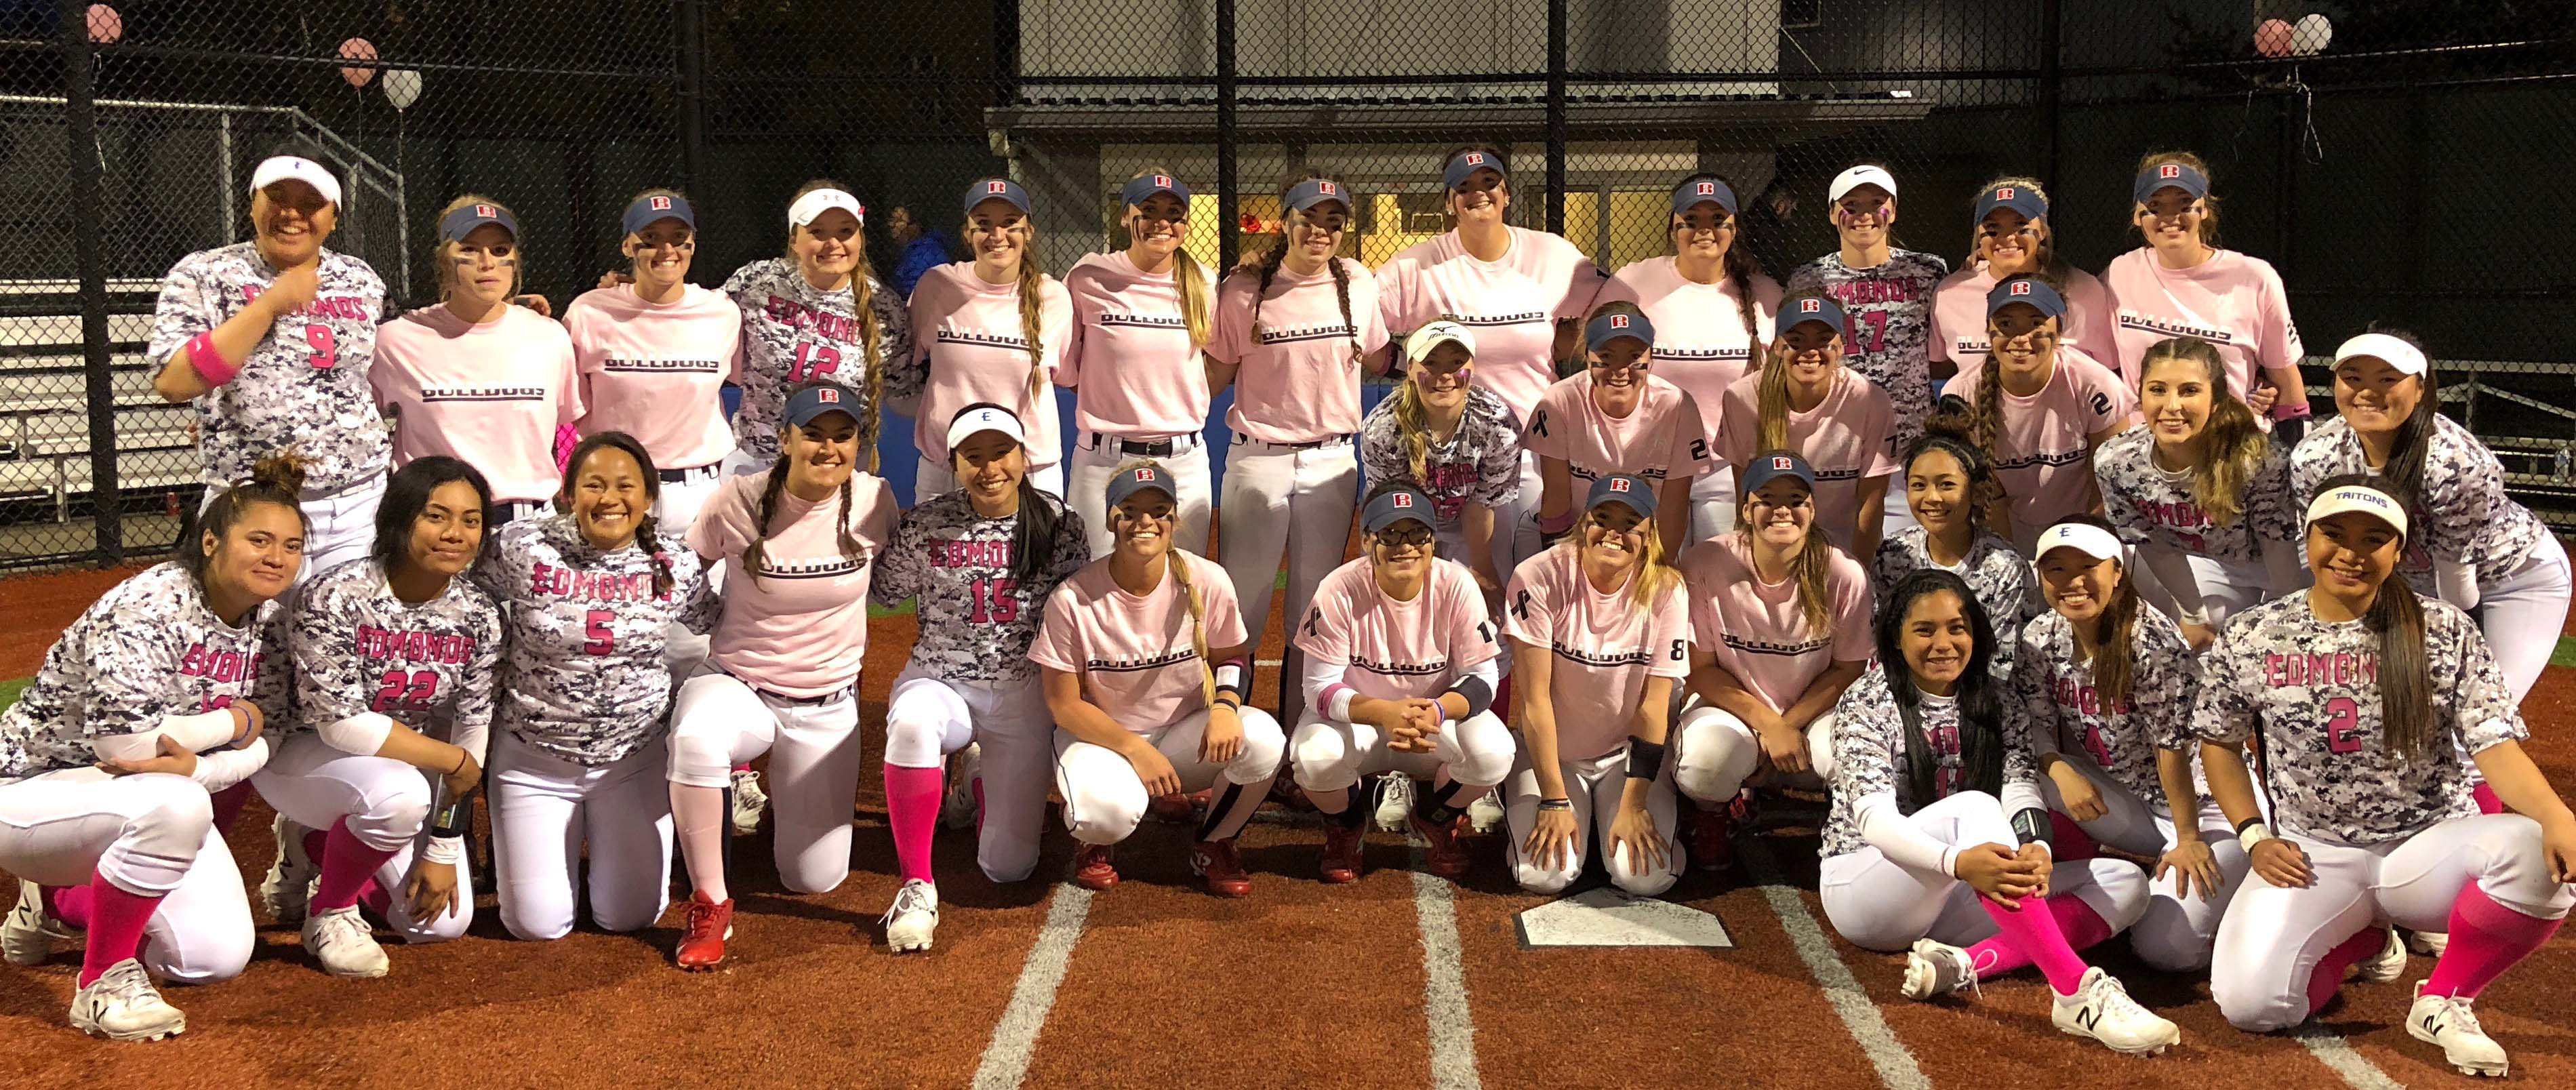 Photo of Edmonds and Bellevue at home plate in pink and camo uniforms